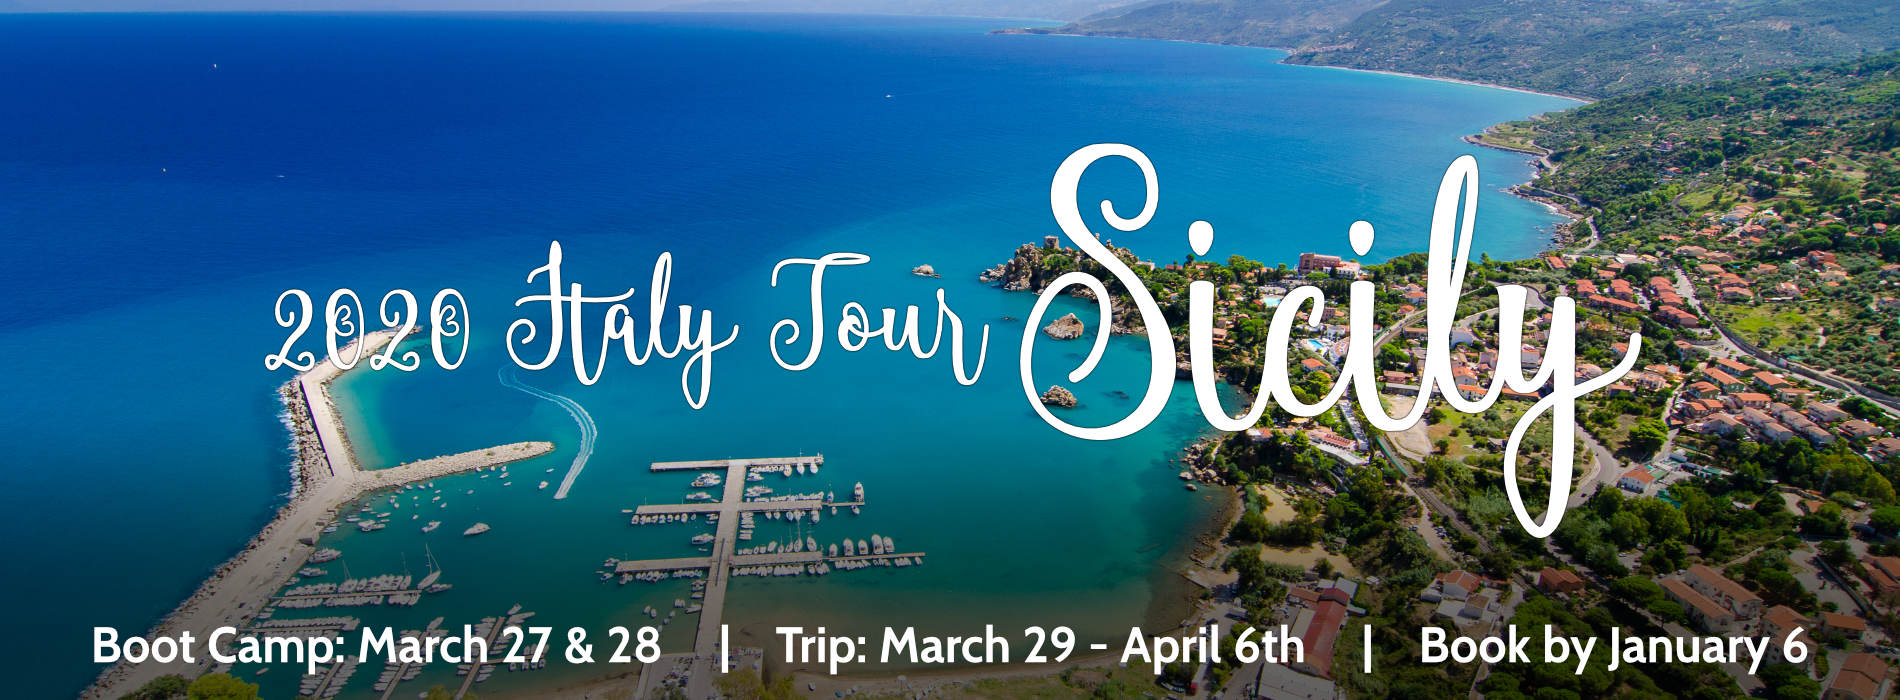 2020 Sicily Tour with The Inn at Stone Mill